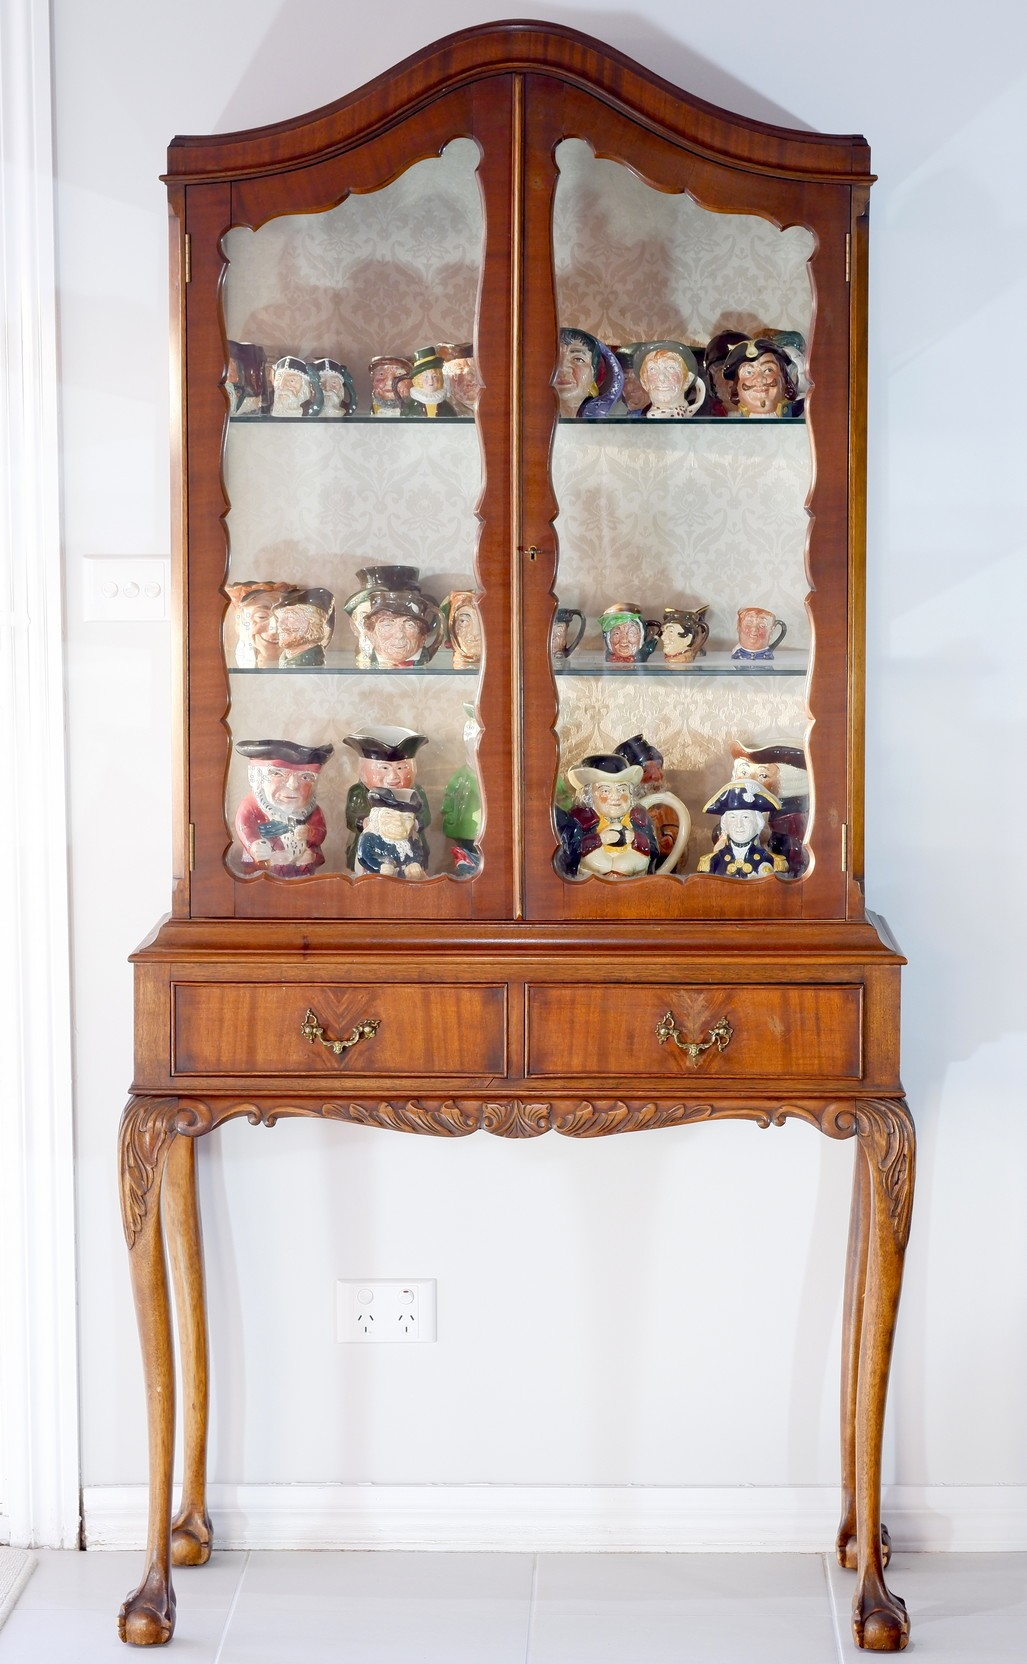 'Vintage Carved Maple and Mahogany Veneer Display Cabinet'